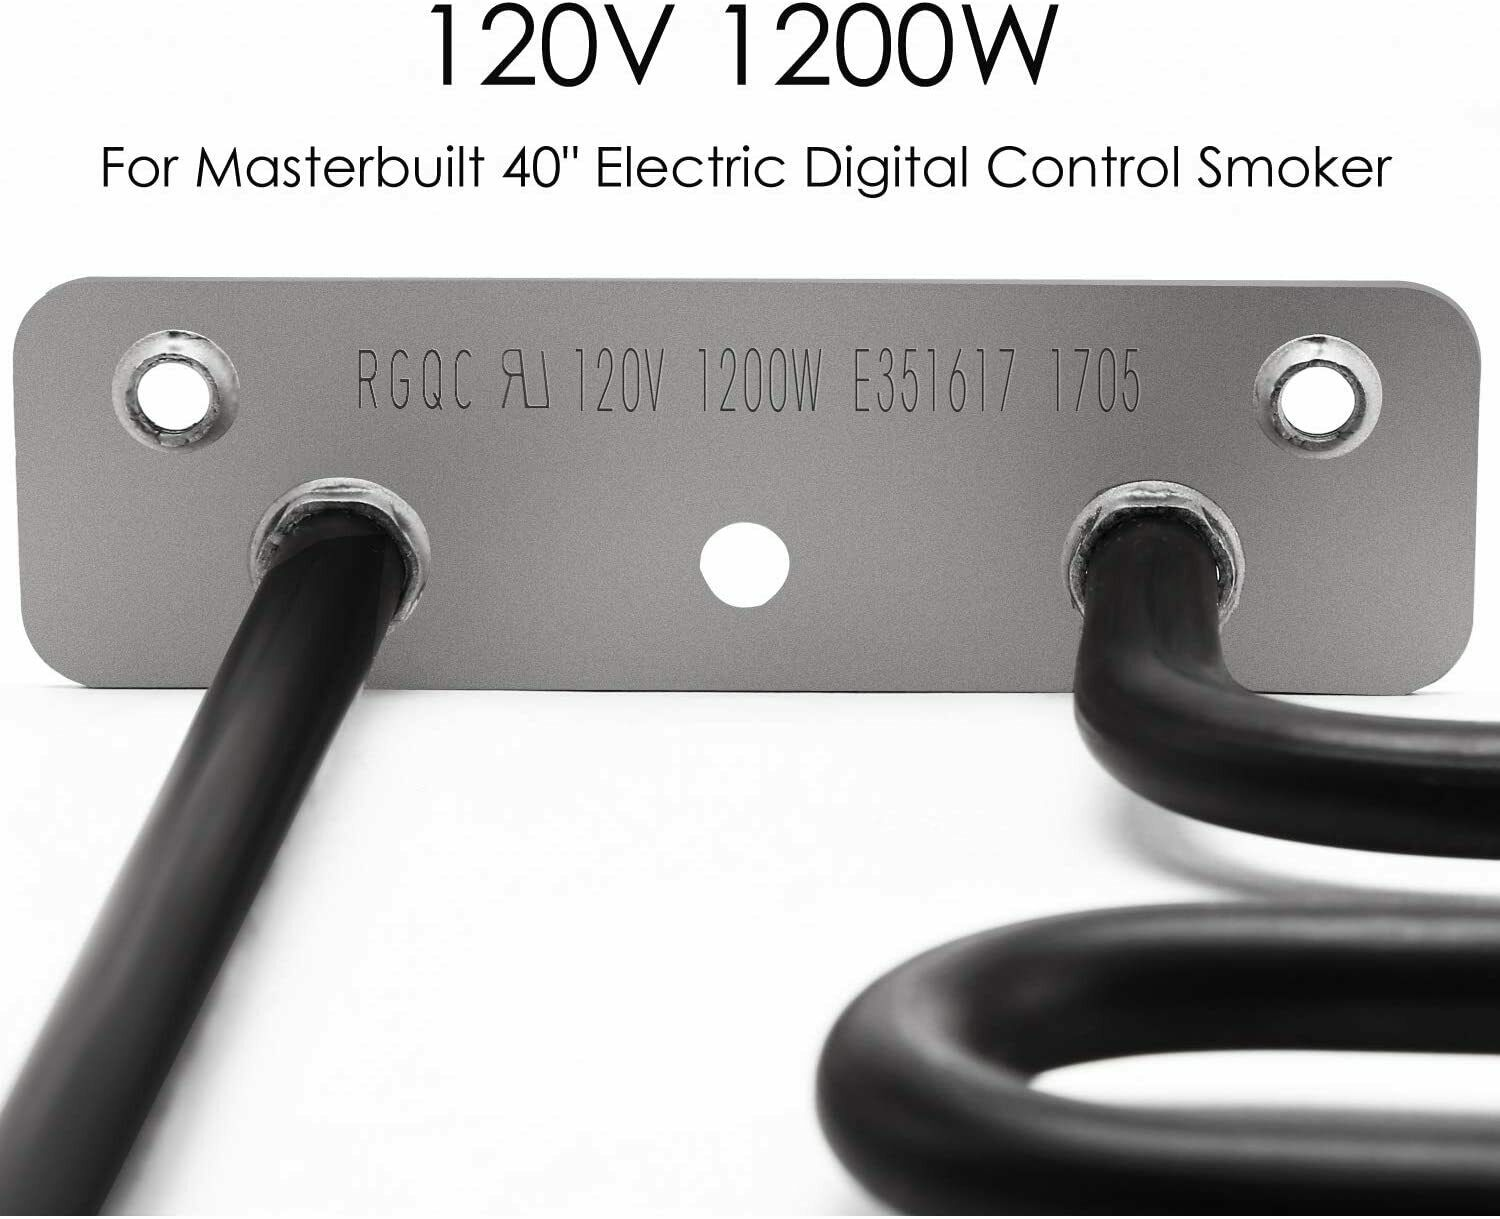 PitsMaster Replacement Electric Smoker 1200 Watts Heating Element for Masterbuilt Heating Element 40 Electric Digital Control Smoker